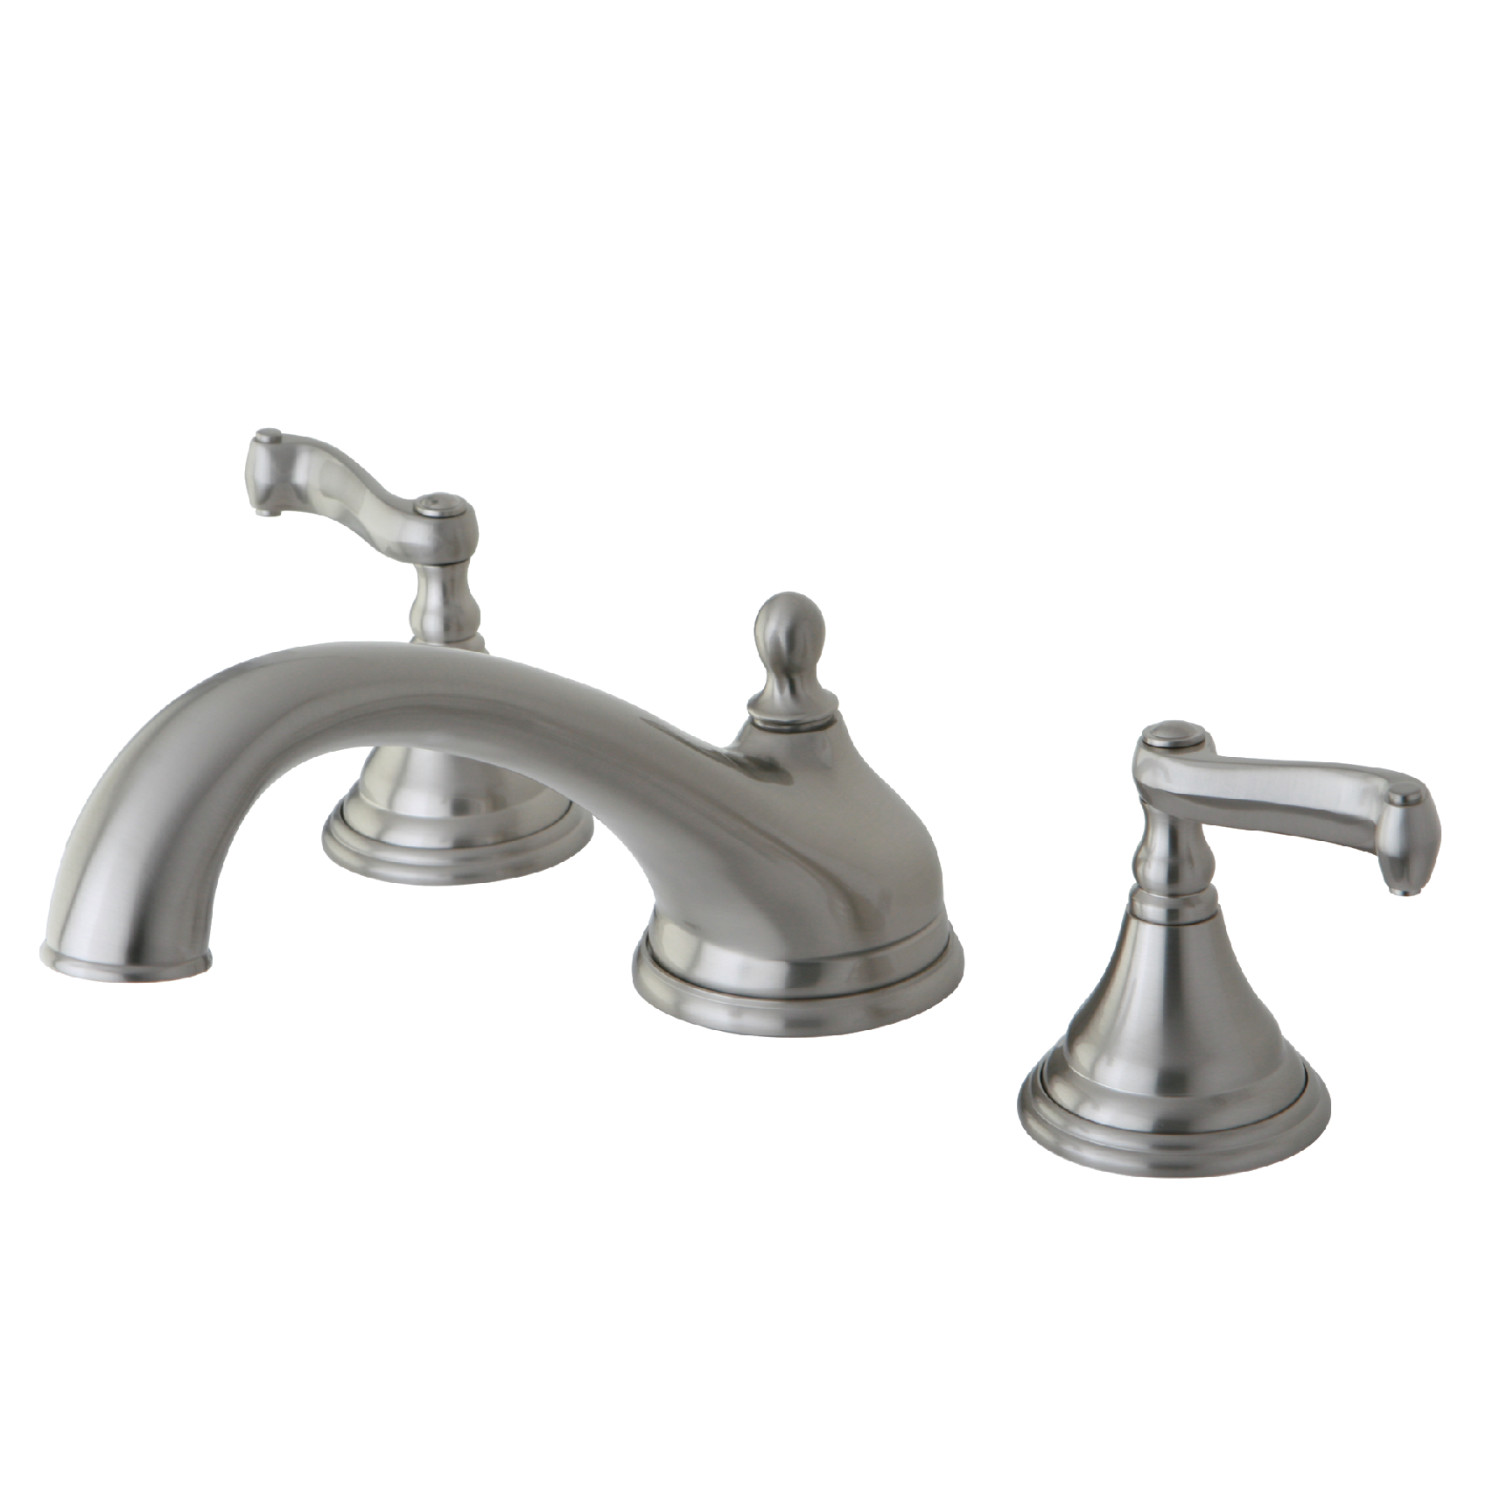 Nap Fauceture FS1616ACL 4-Inch Centerset Bathroom Faucet with Push Pop-Up Drain